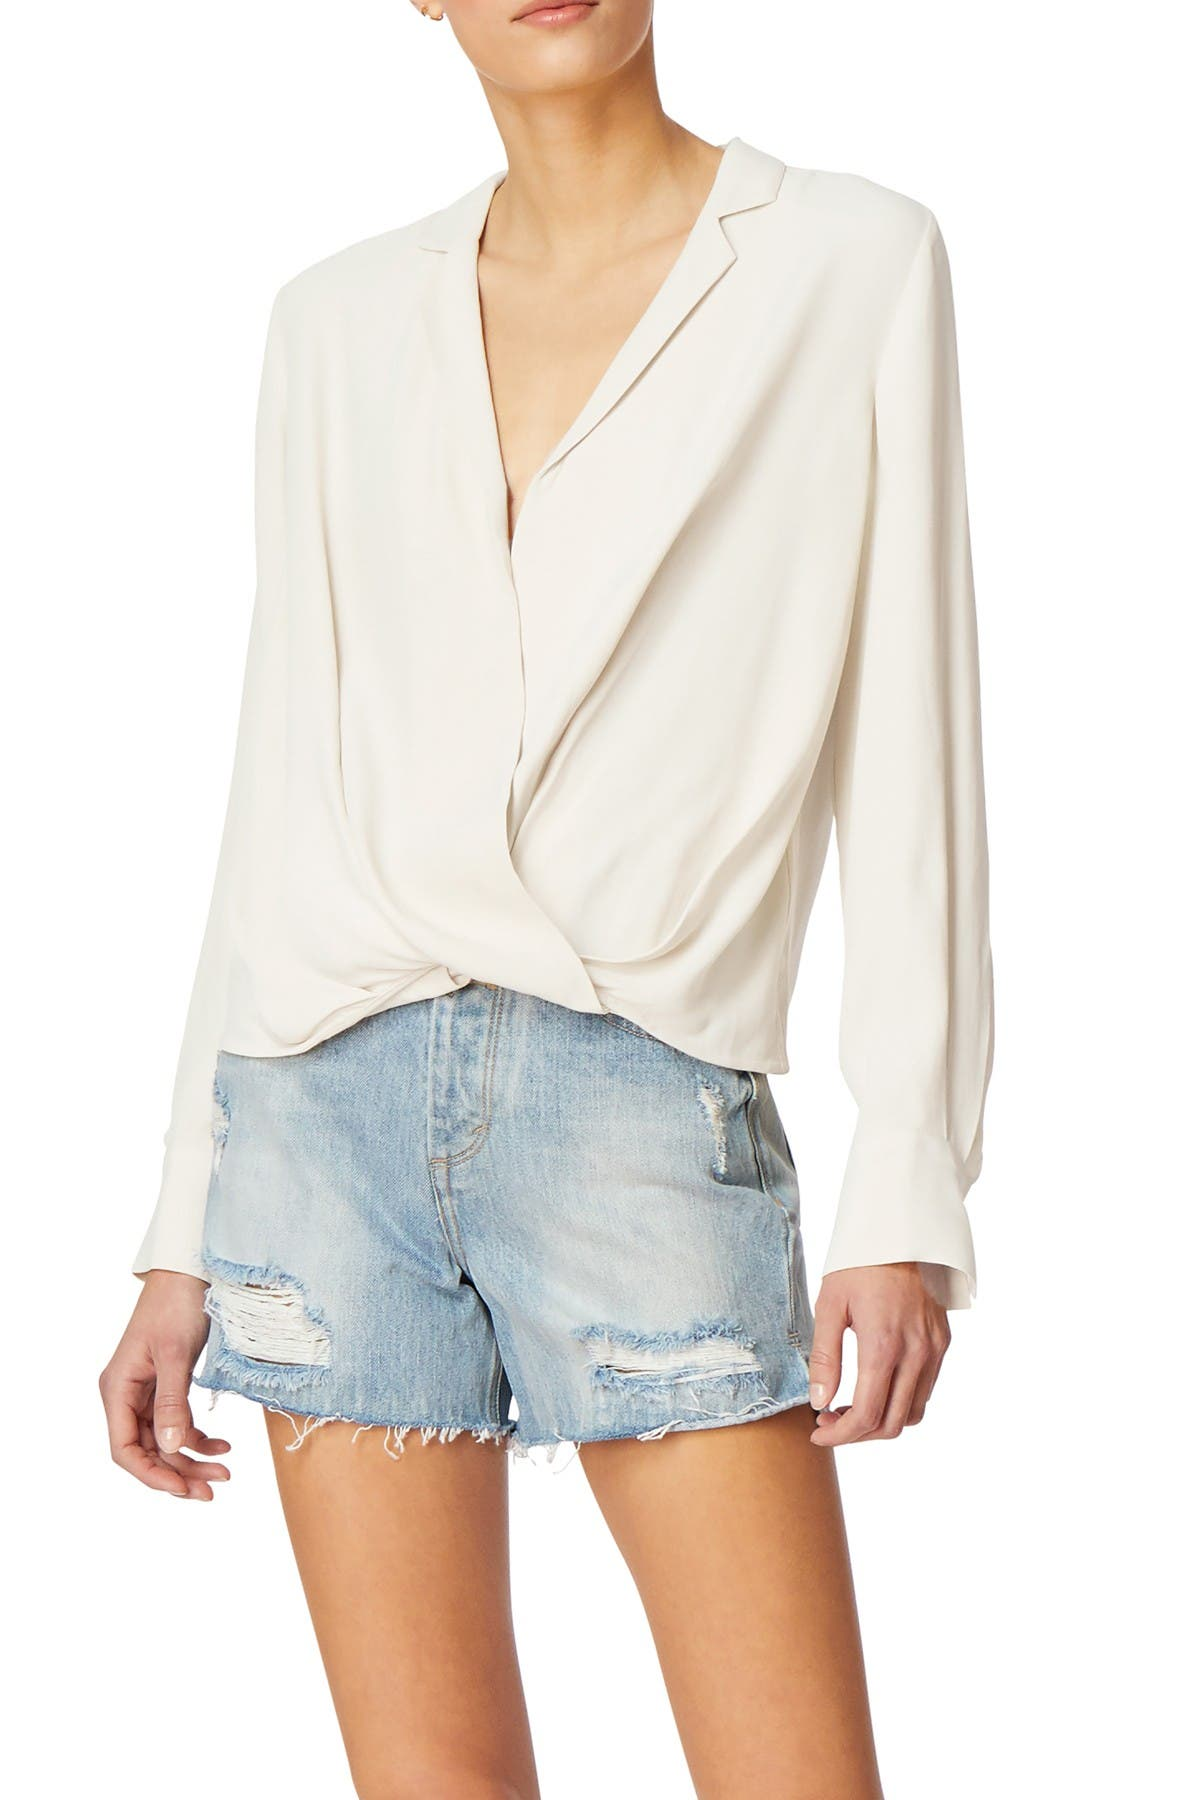 Image of Habitual Waverly Wrap Top